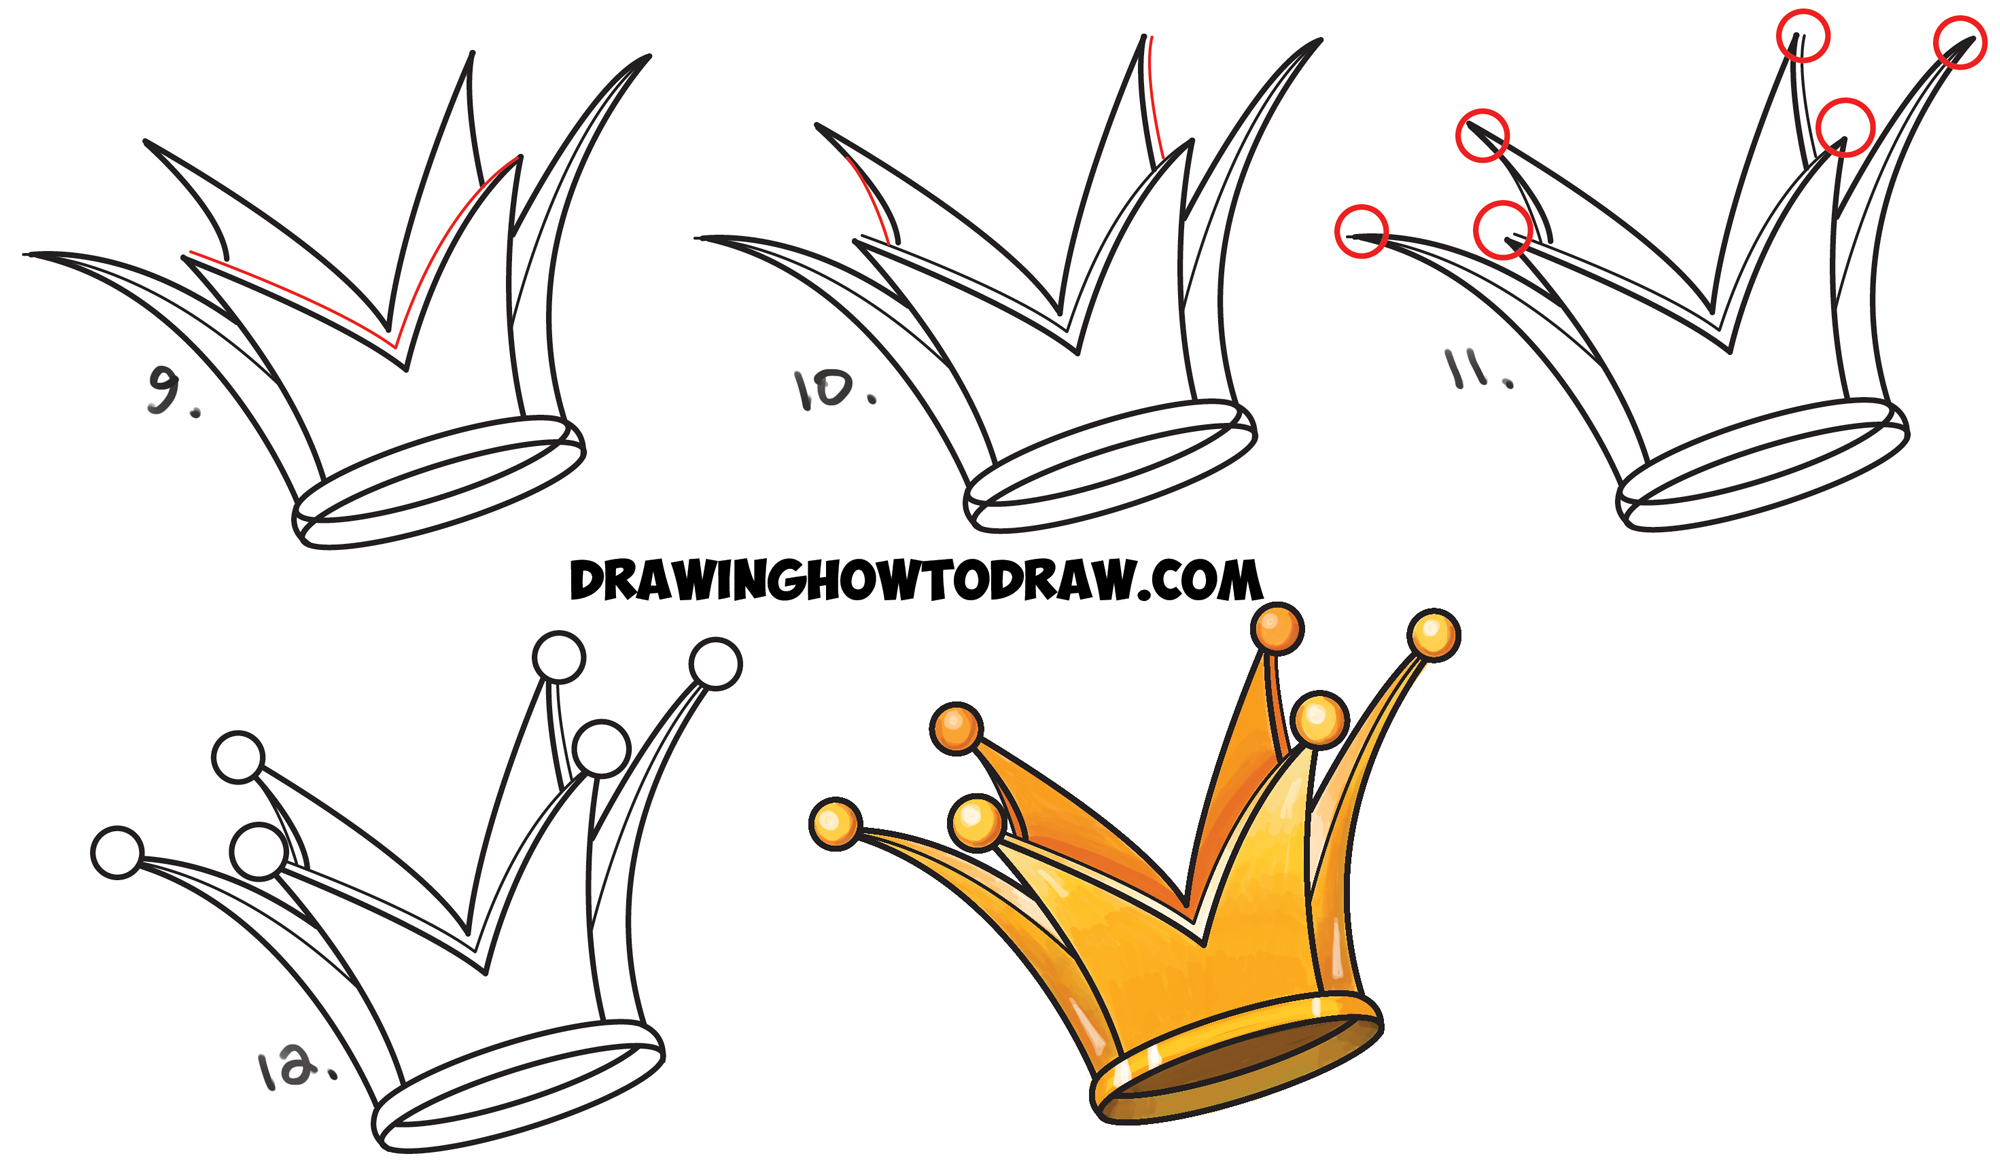 Learn How to Draw a Crown - Drawing Cartoon Crowns - Simple Steps Drawing Art Lesson